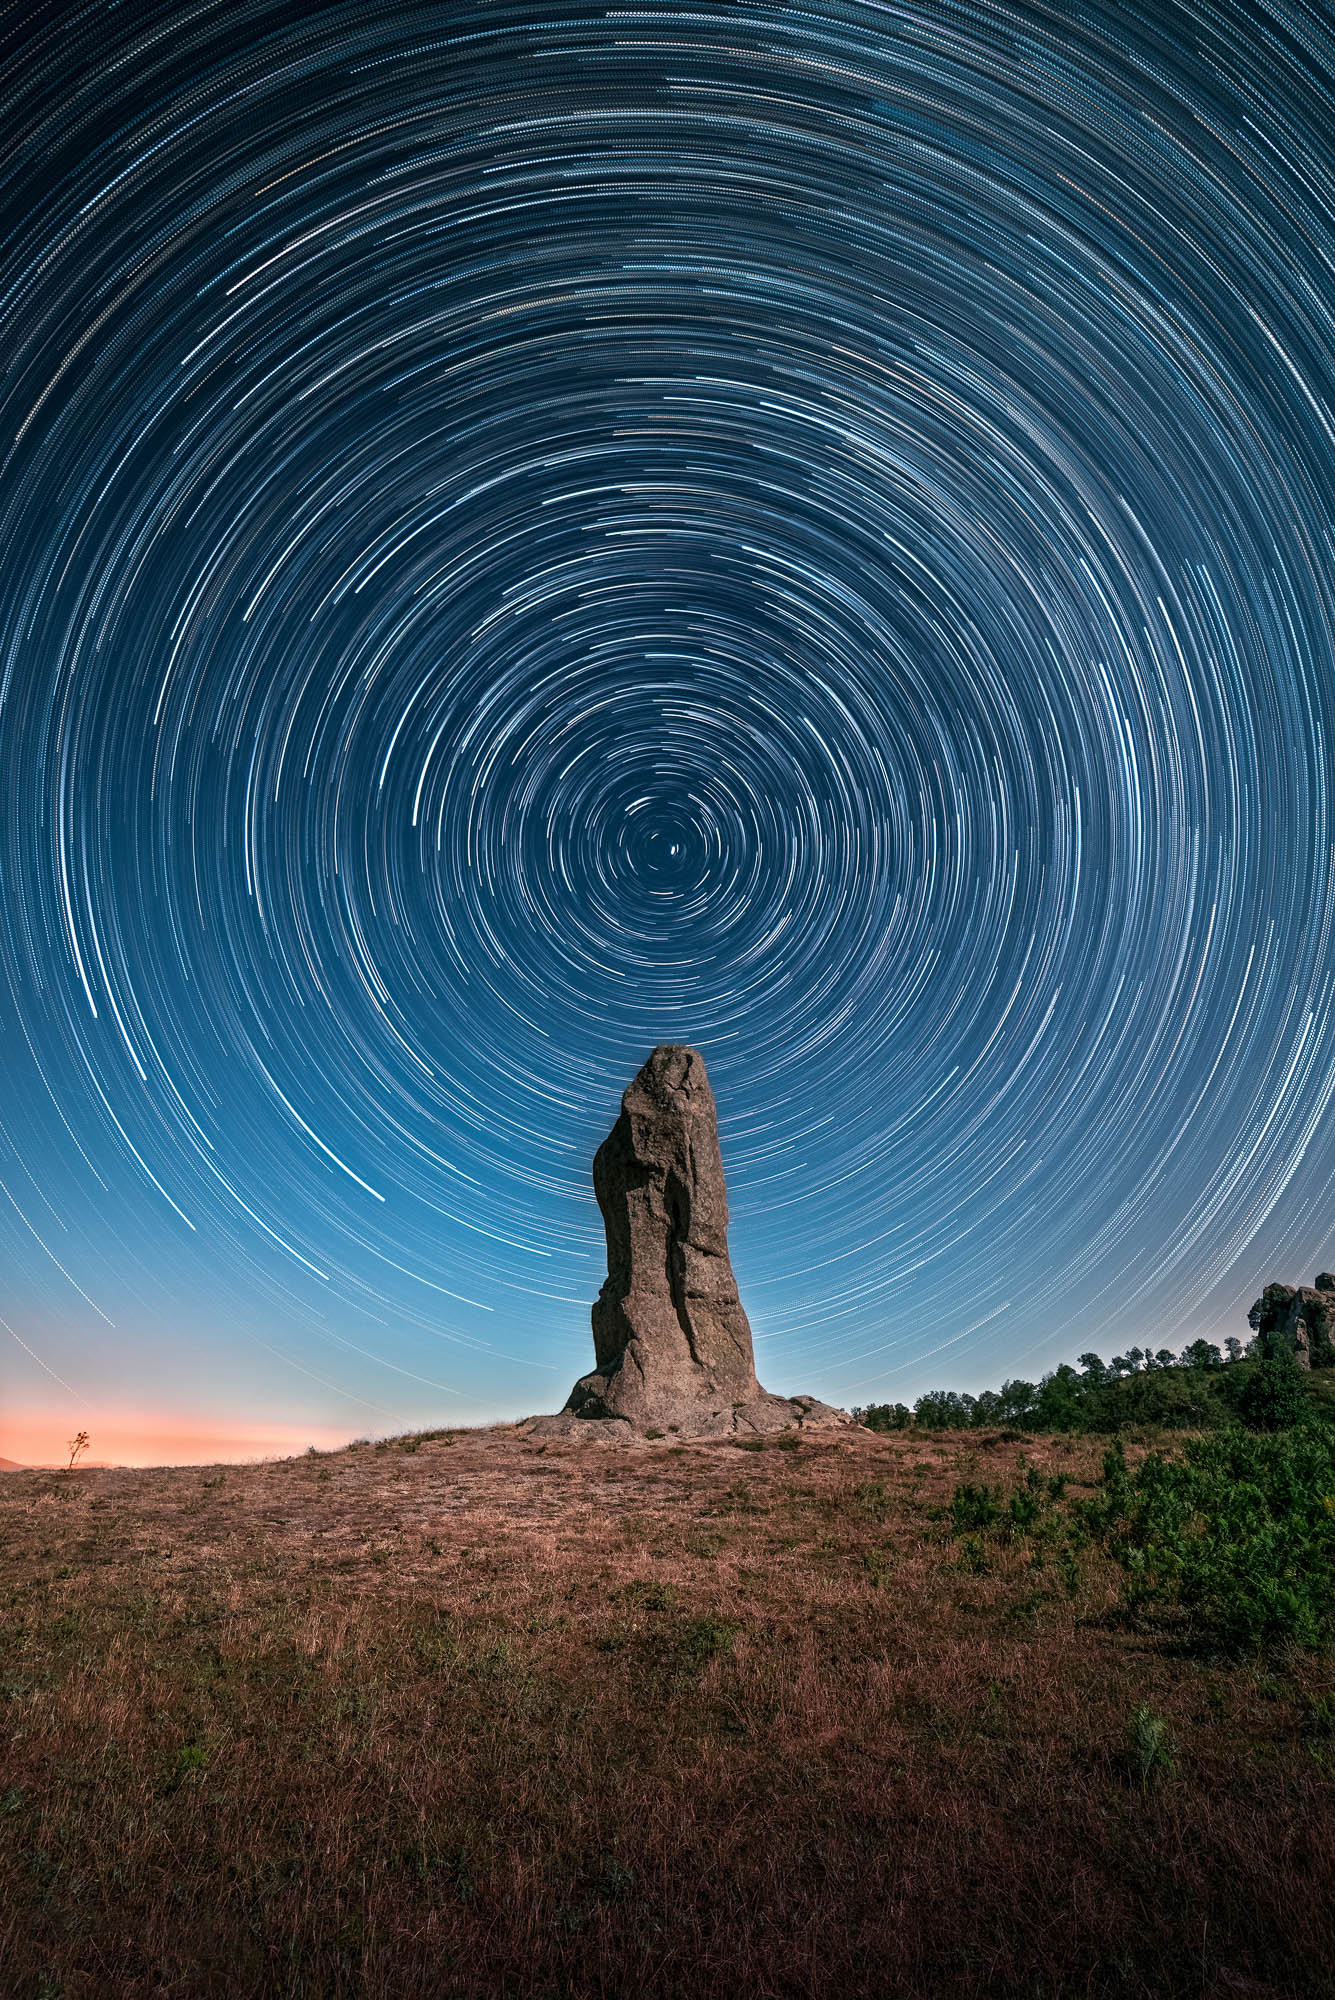 Startrail of 120 shots taken at the Argimusco megaliths, in the territory of Santa Domenica Vittoria, in Sicily.